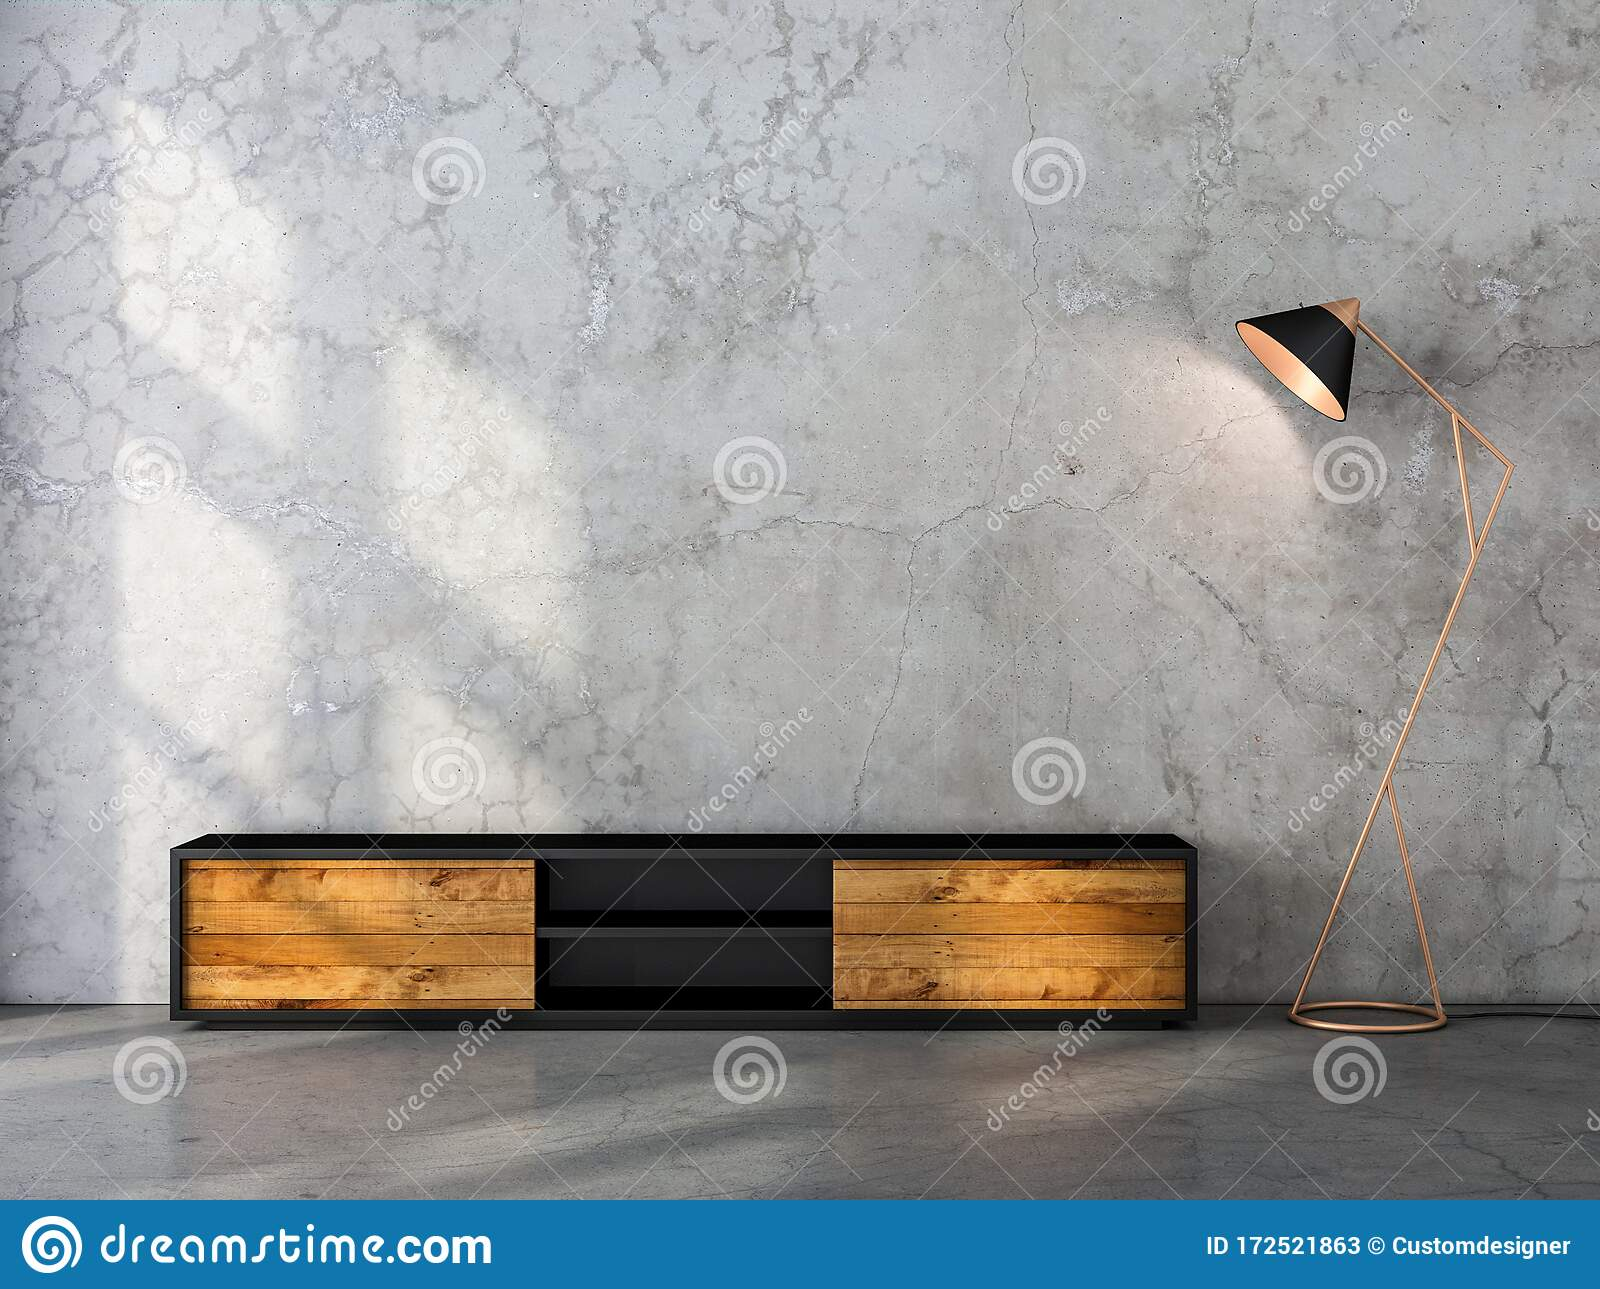 Modern Black Tv Console Mockup With Wooden Facade In Empty Room Stock Illustration Illustration Of Interior Console 172521863